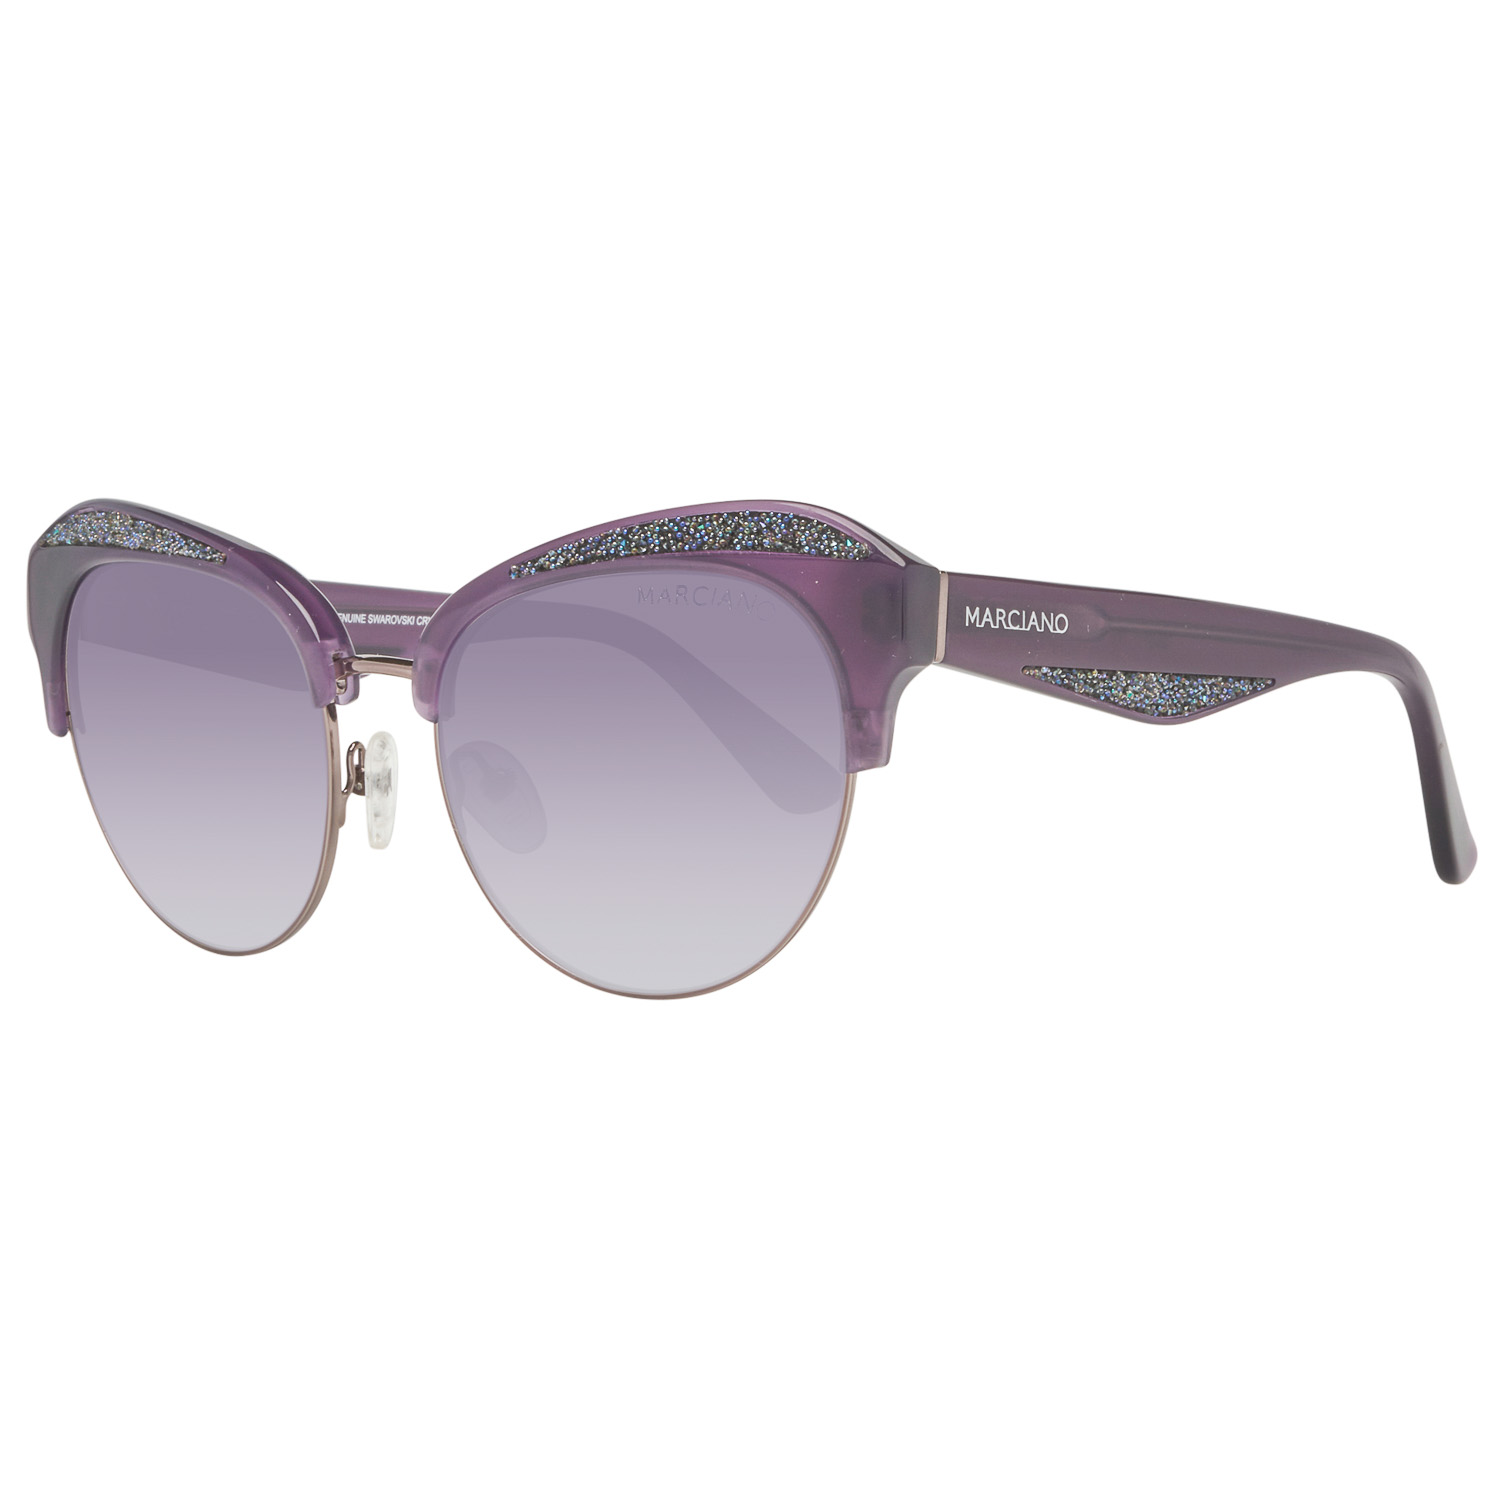 Guess by Marciano Sunglasses GM0777 78B 55 Purple